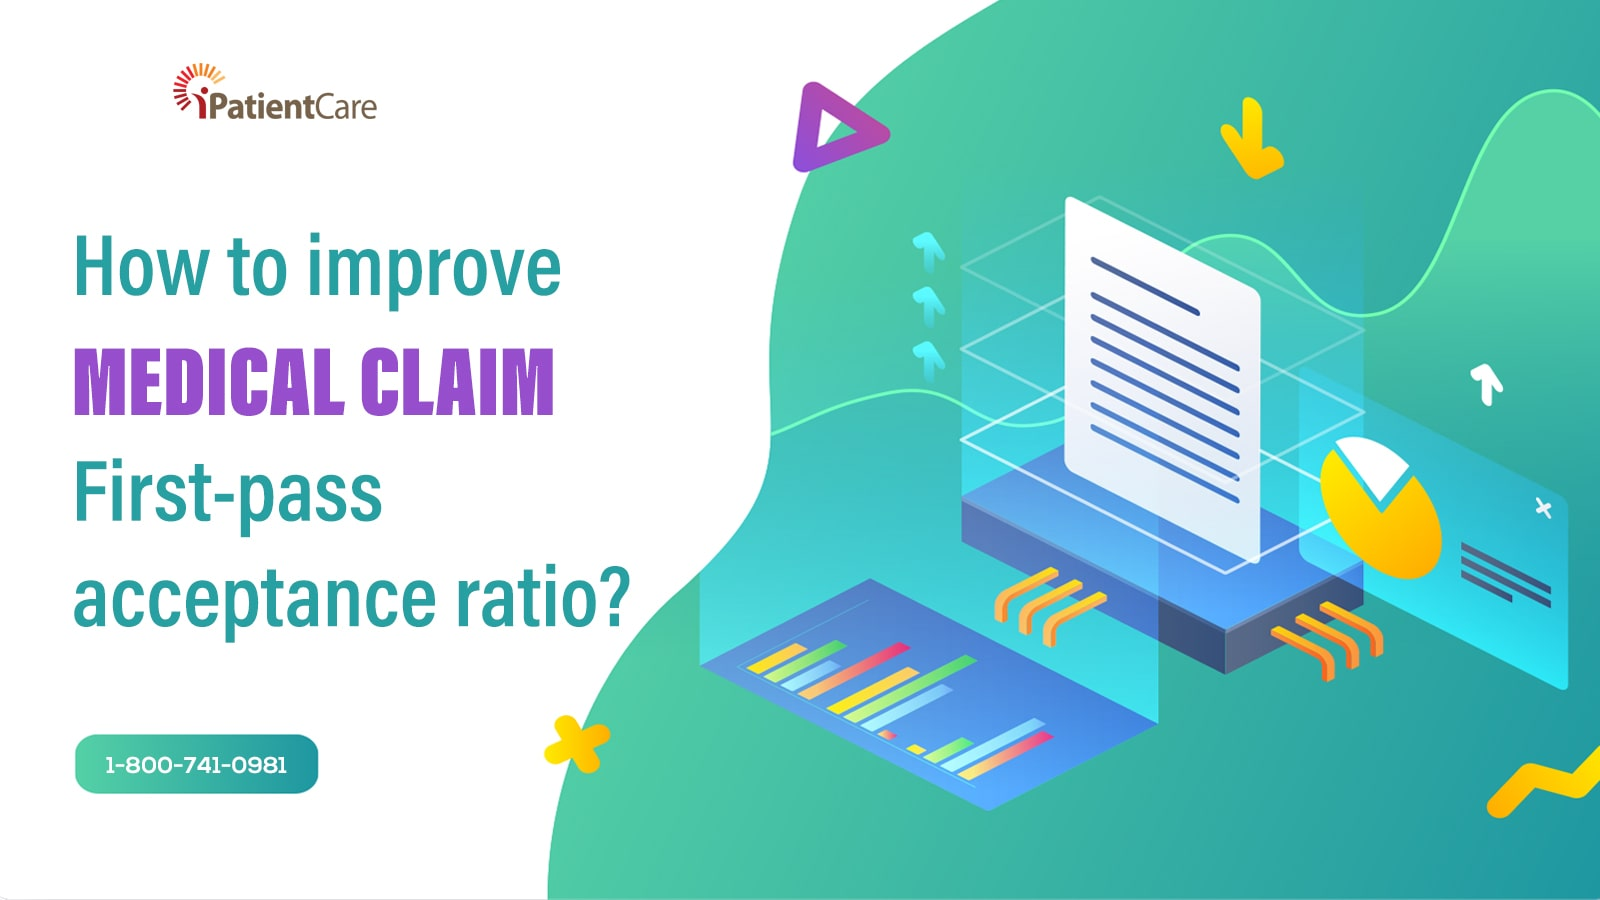 iPatientCare Blog - How to improve Medical Claim First-pass acceptance ratio